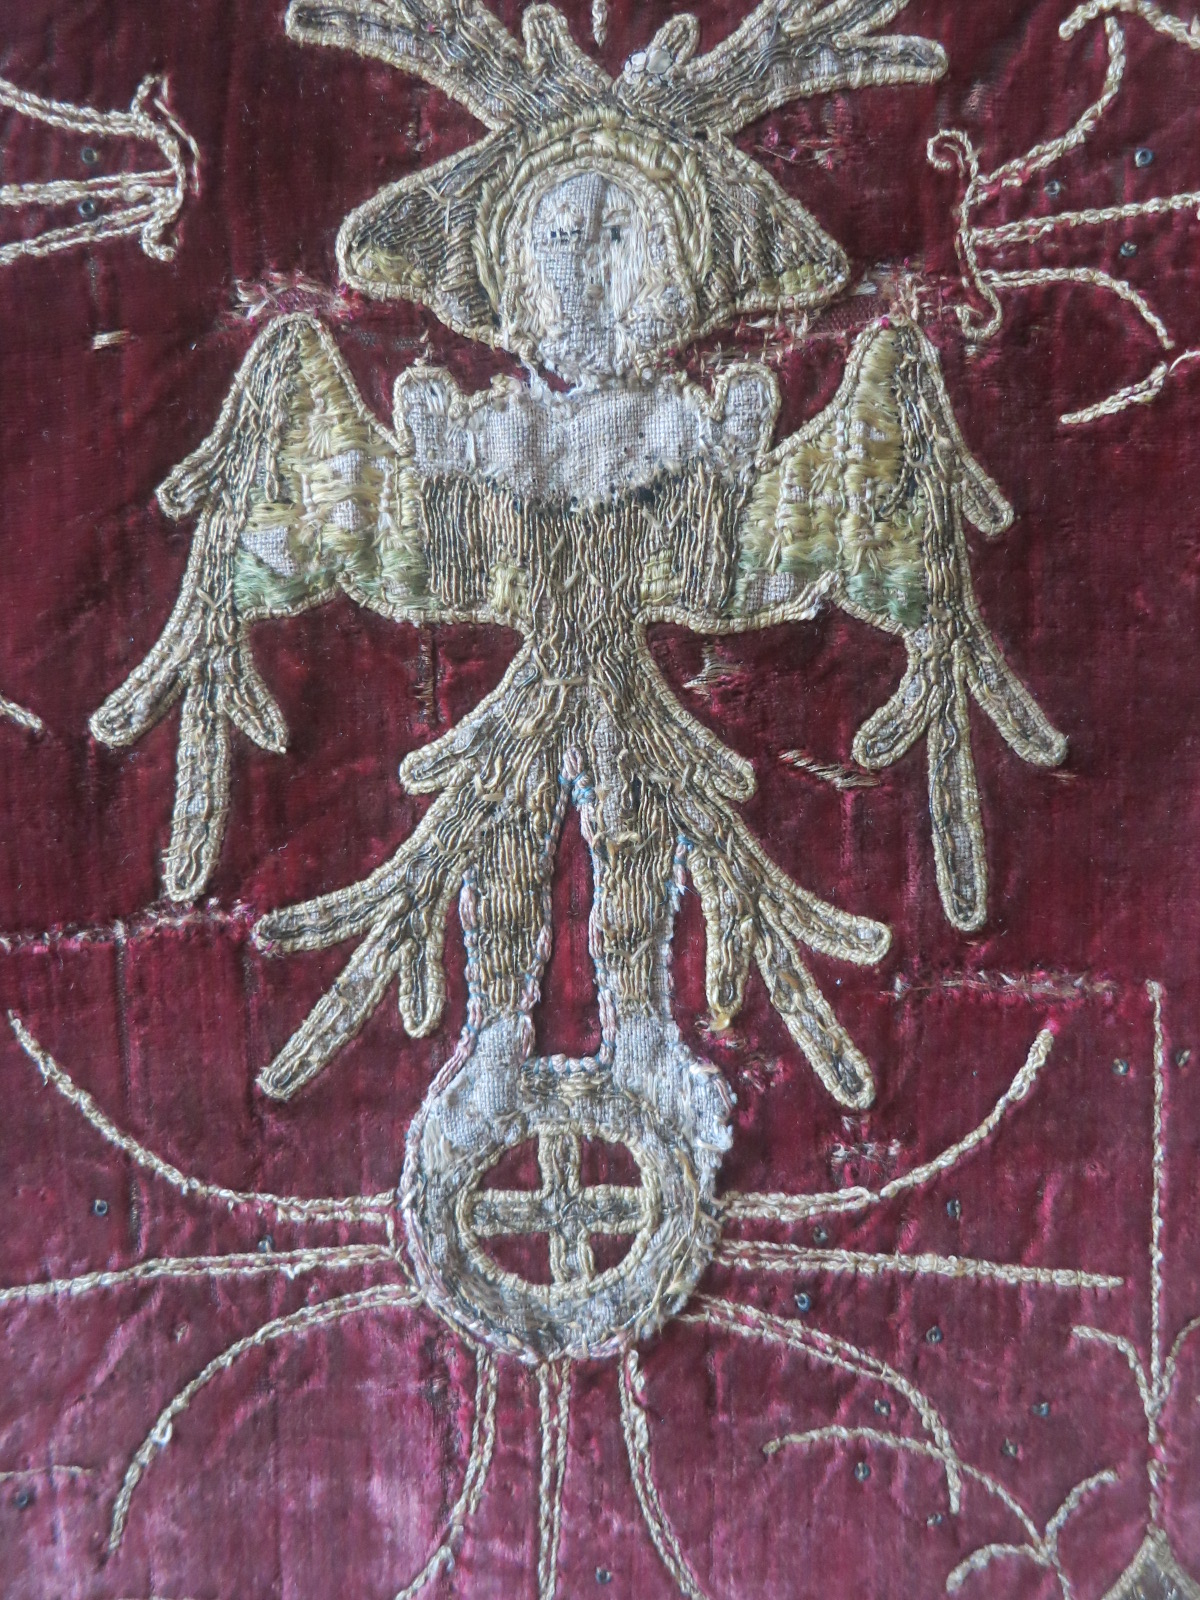 A Seraphim on the velvet of the Skenfrith Cope